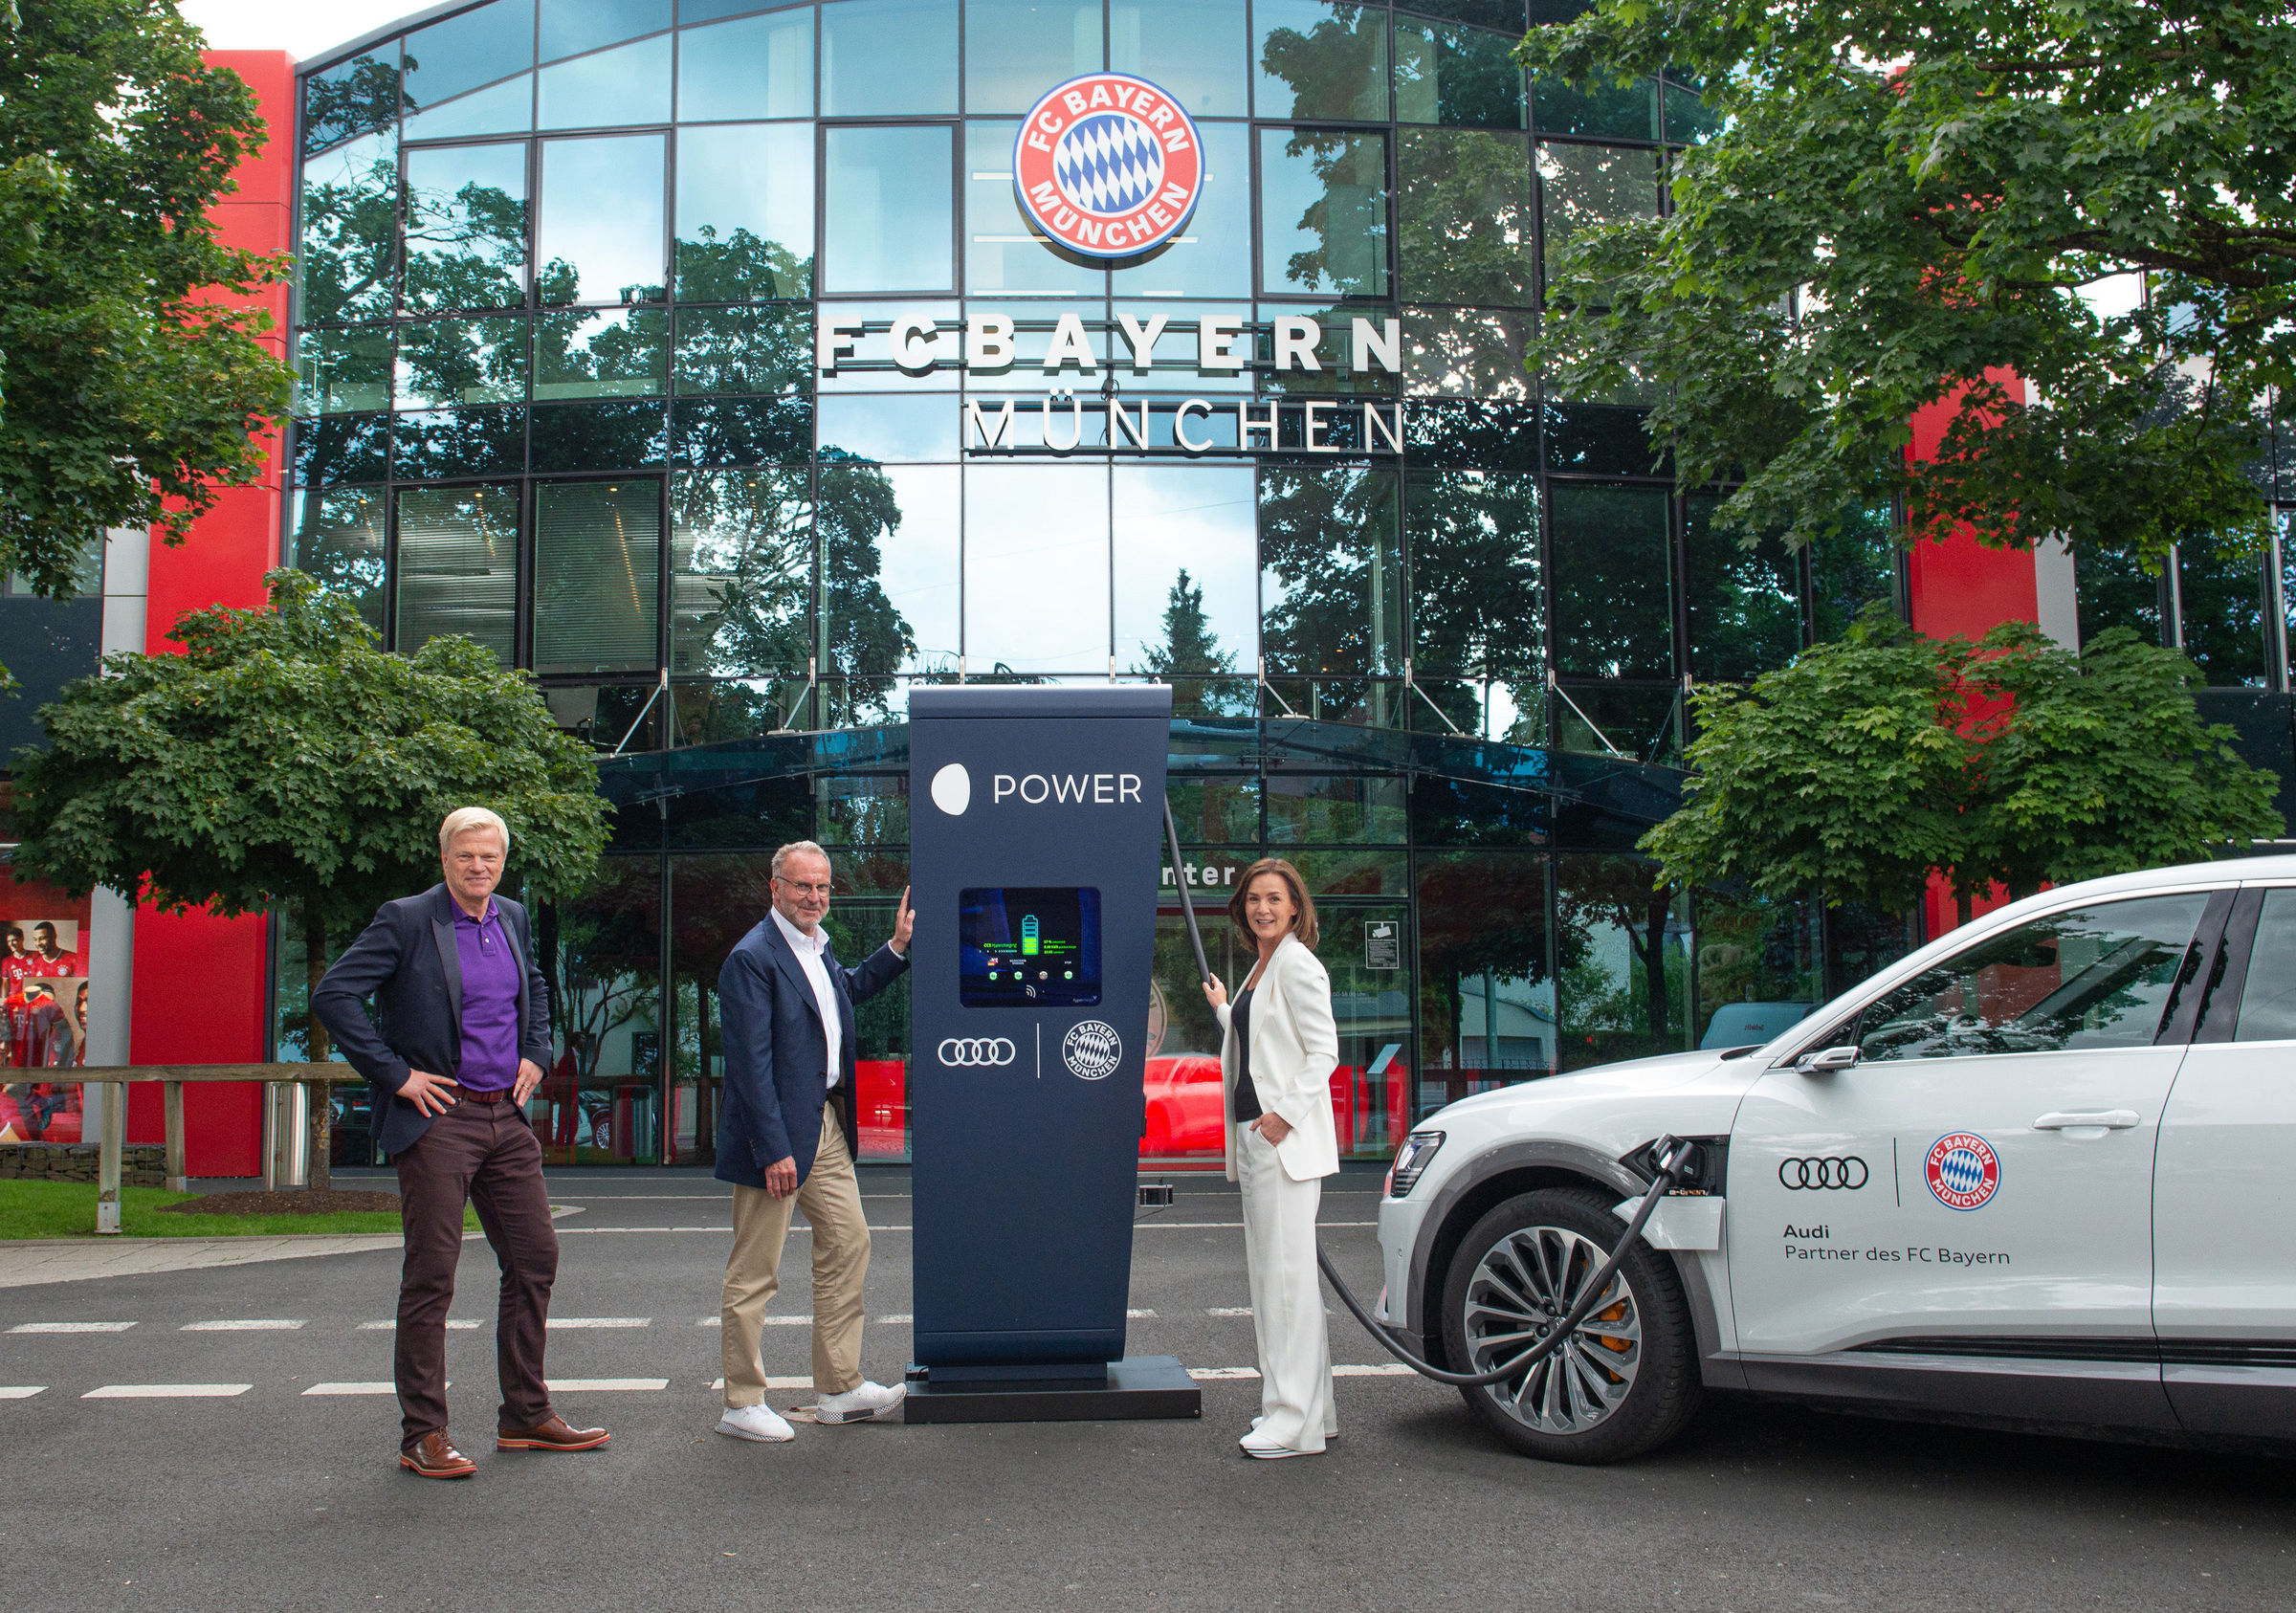 Audi equips FC Bayern training grounds with charging points